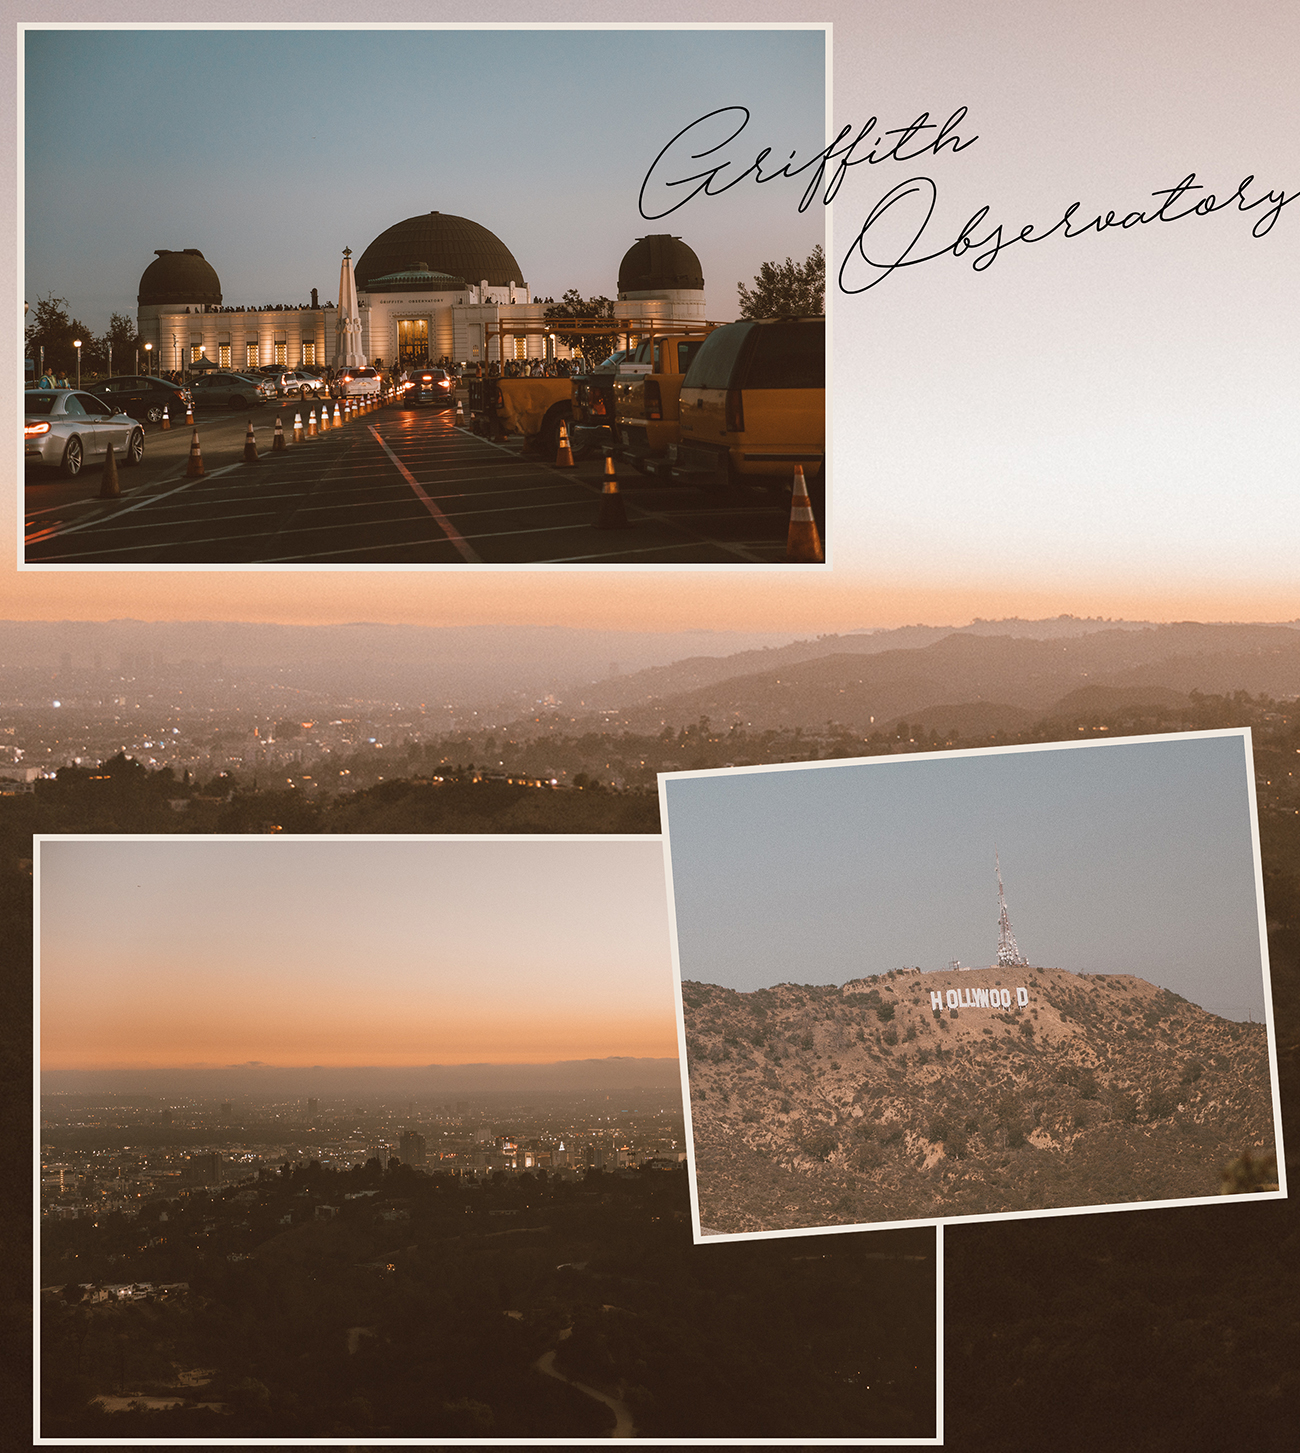 California Road trip Griffith Observatory by photographer Ailera Stone